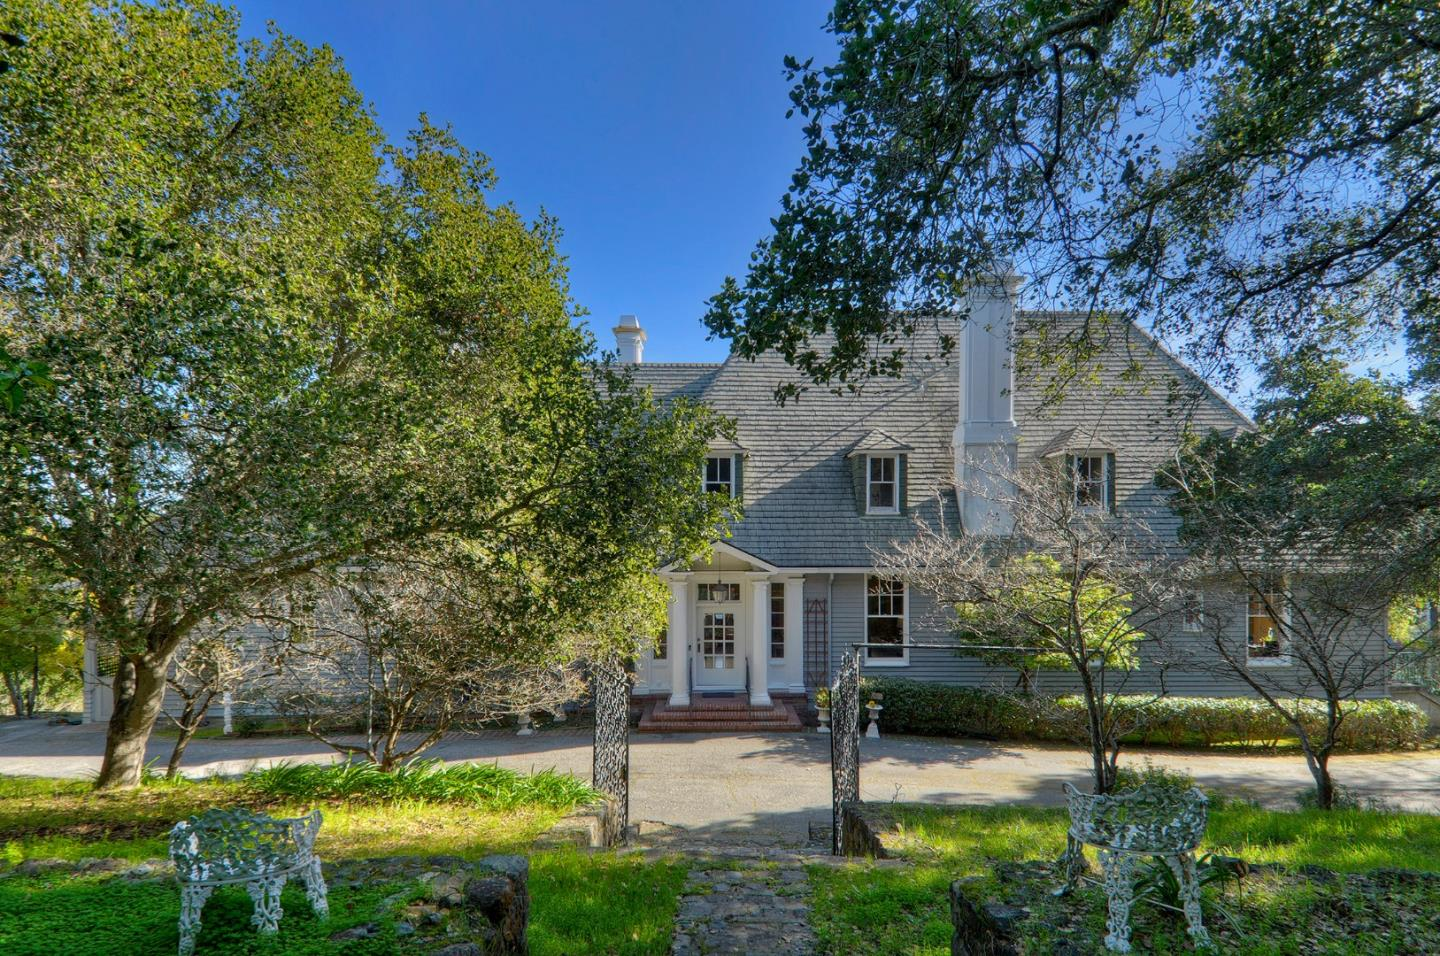 This cherished property is on the market for the first time in 60 years with roots dating back to 1910 on a rare lot of more than three-quarters of an acre. Spanning approximately 38,000 square feet tucked away at the end of a cul-de-sac, the private, park-like setting also features views out to the San Francisco Bay. This original Bakewell and Brown designed home boasts an impressive portico introduces the time-honored architecture with dormer windows on the steeply pitched roofline and a spacious terrace outlined with carved balustrades. Inside, the homes vast dimensions of almost 6,000 square feet exudes the homes original character that includes extensive millwork, hardwood floors, colorful wallcoverings, and vintage tiled bathrooms. Whether enjoying today or renovating for the future this treasured property is ready for the next generation. Convenient to Roy Cloud School (K-8) and midway between San Francisco and Silicon Valley, this is indeed a very special opportunity.